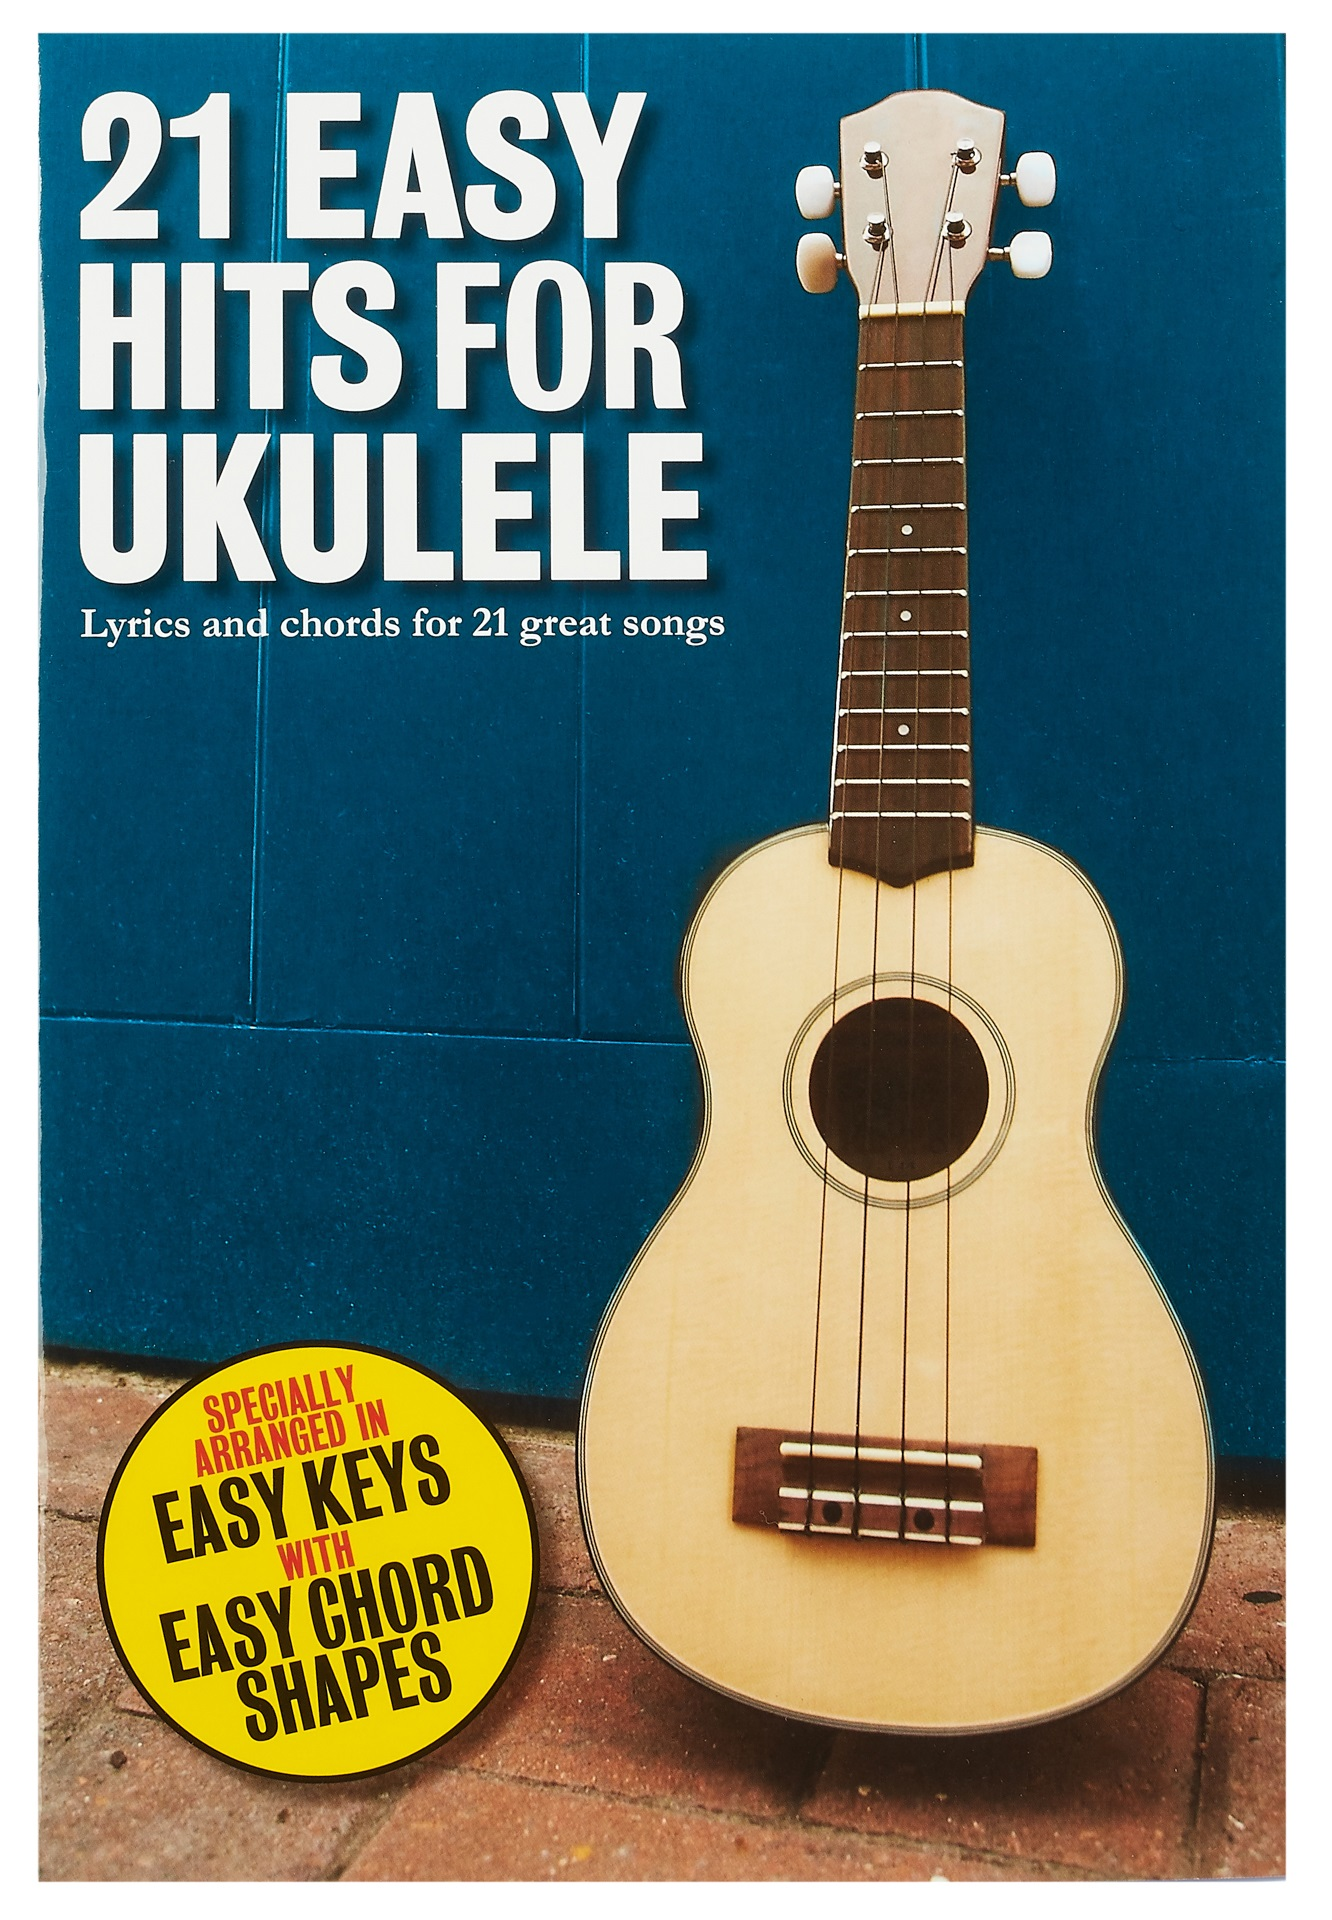 MS 21 Easy Hits For Ukulele